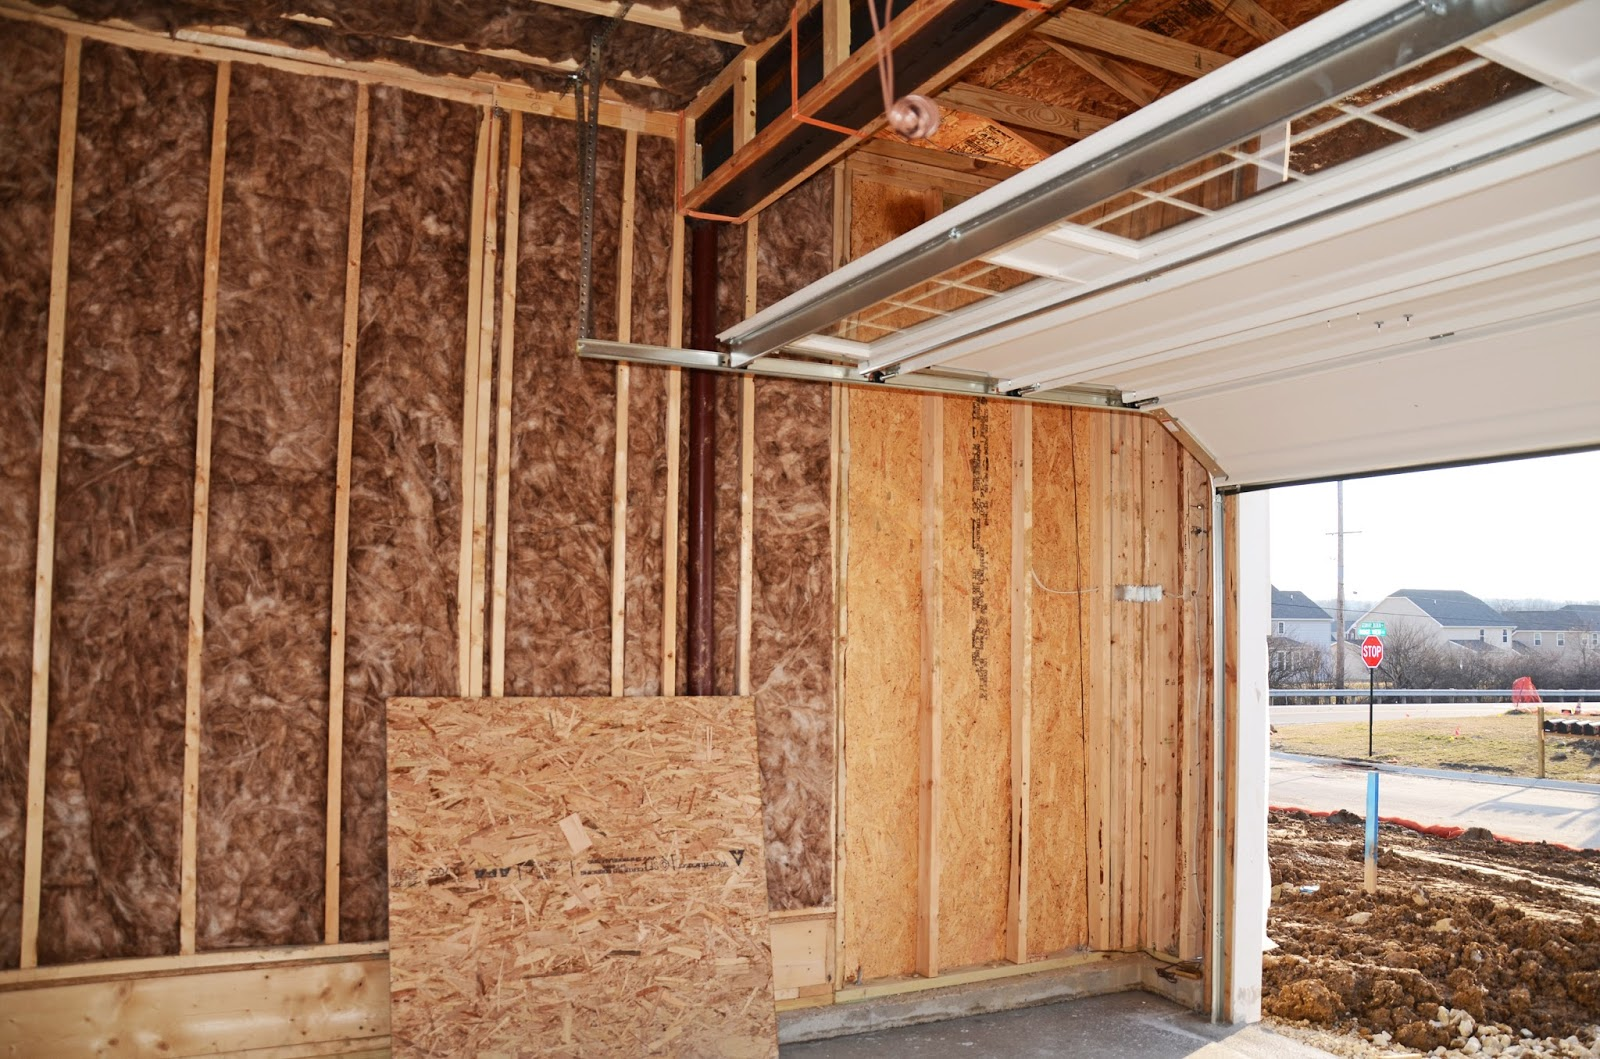 Lighting Basement Washroom Stairs: Ryan Homes Milan: New Home Construction Experience: Ready